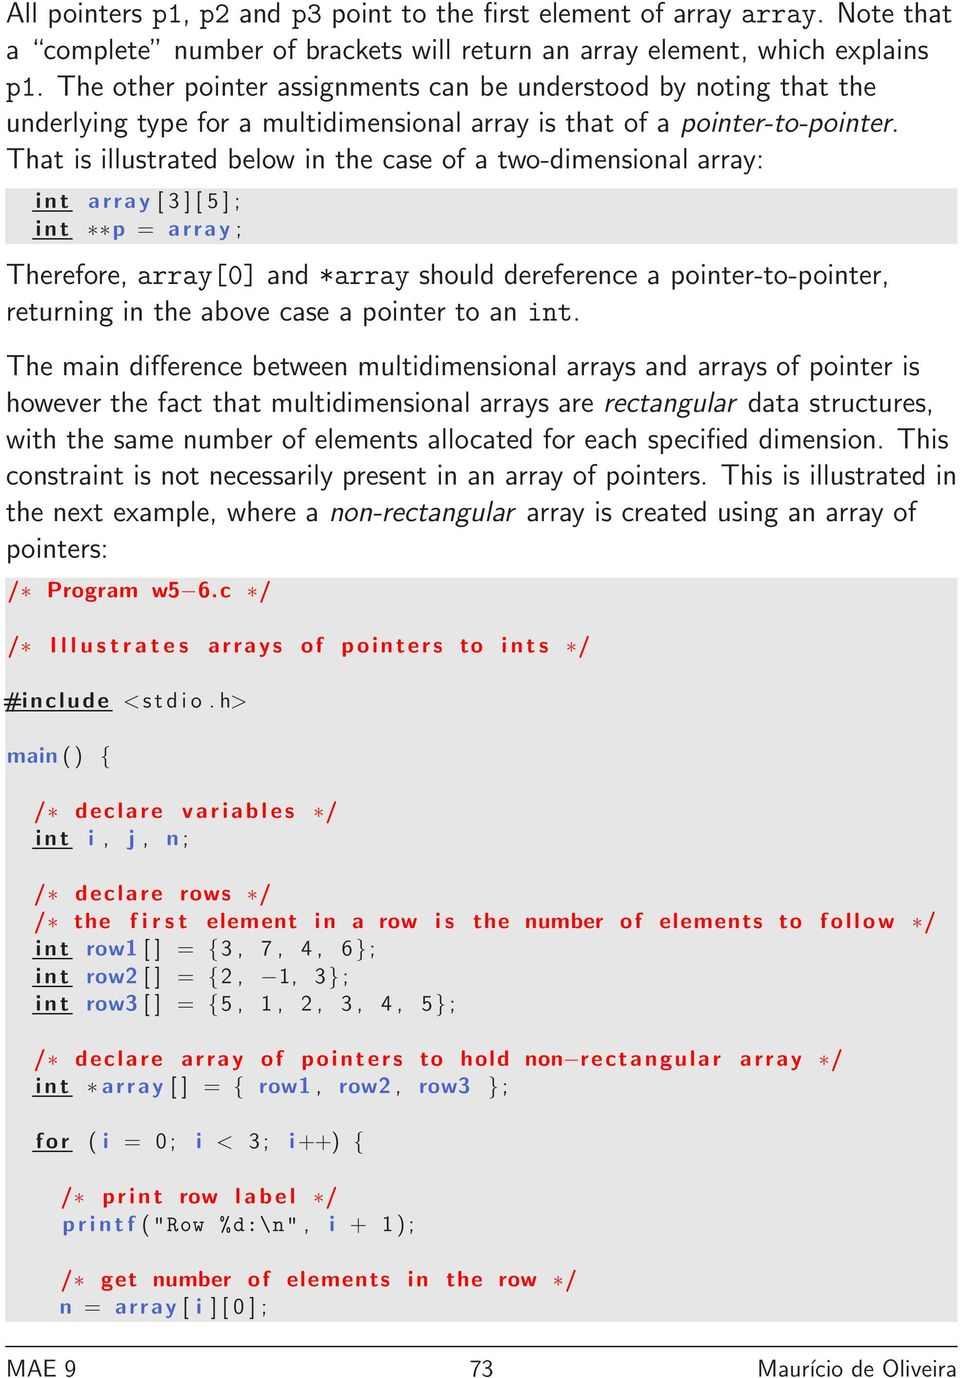 That is illustrated below in the case of a two-dimensional array: int array [ 3 ] [ 5 ] ; int p = array ; Therefore, array[0] and *array should dereference a pointer-to-pointer, returning in the